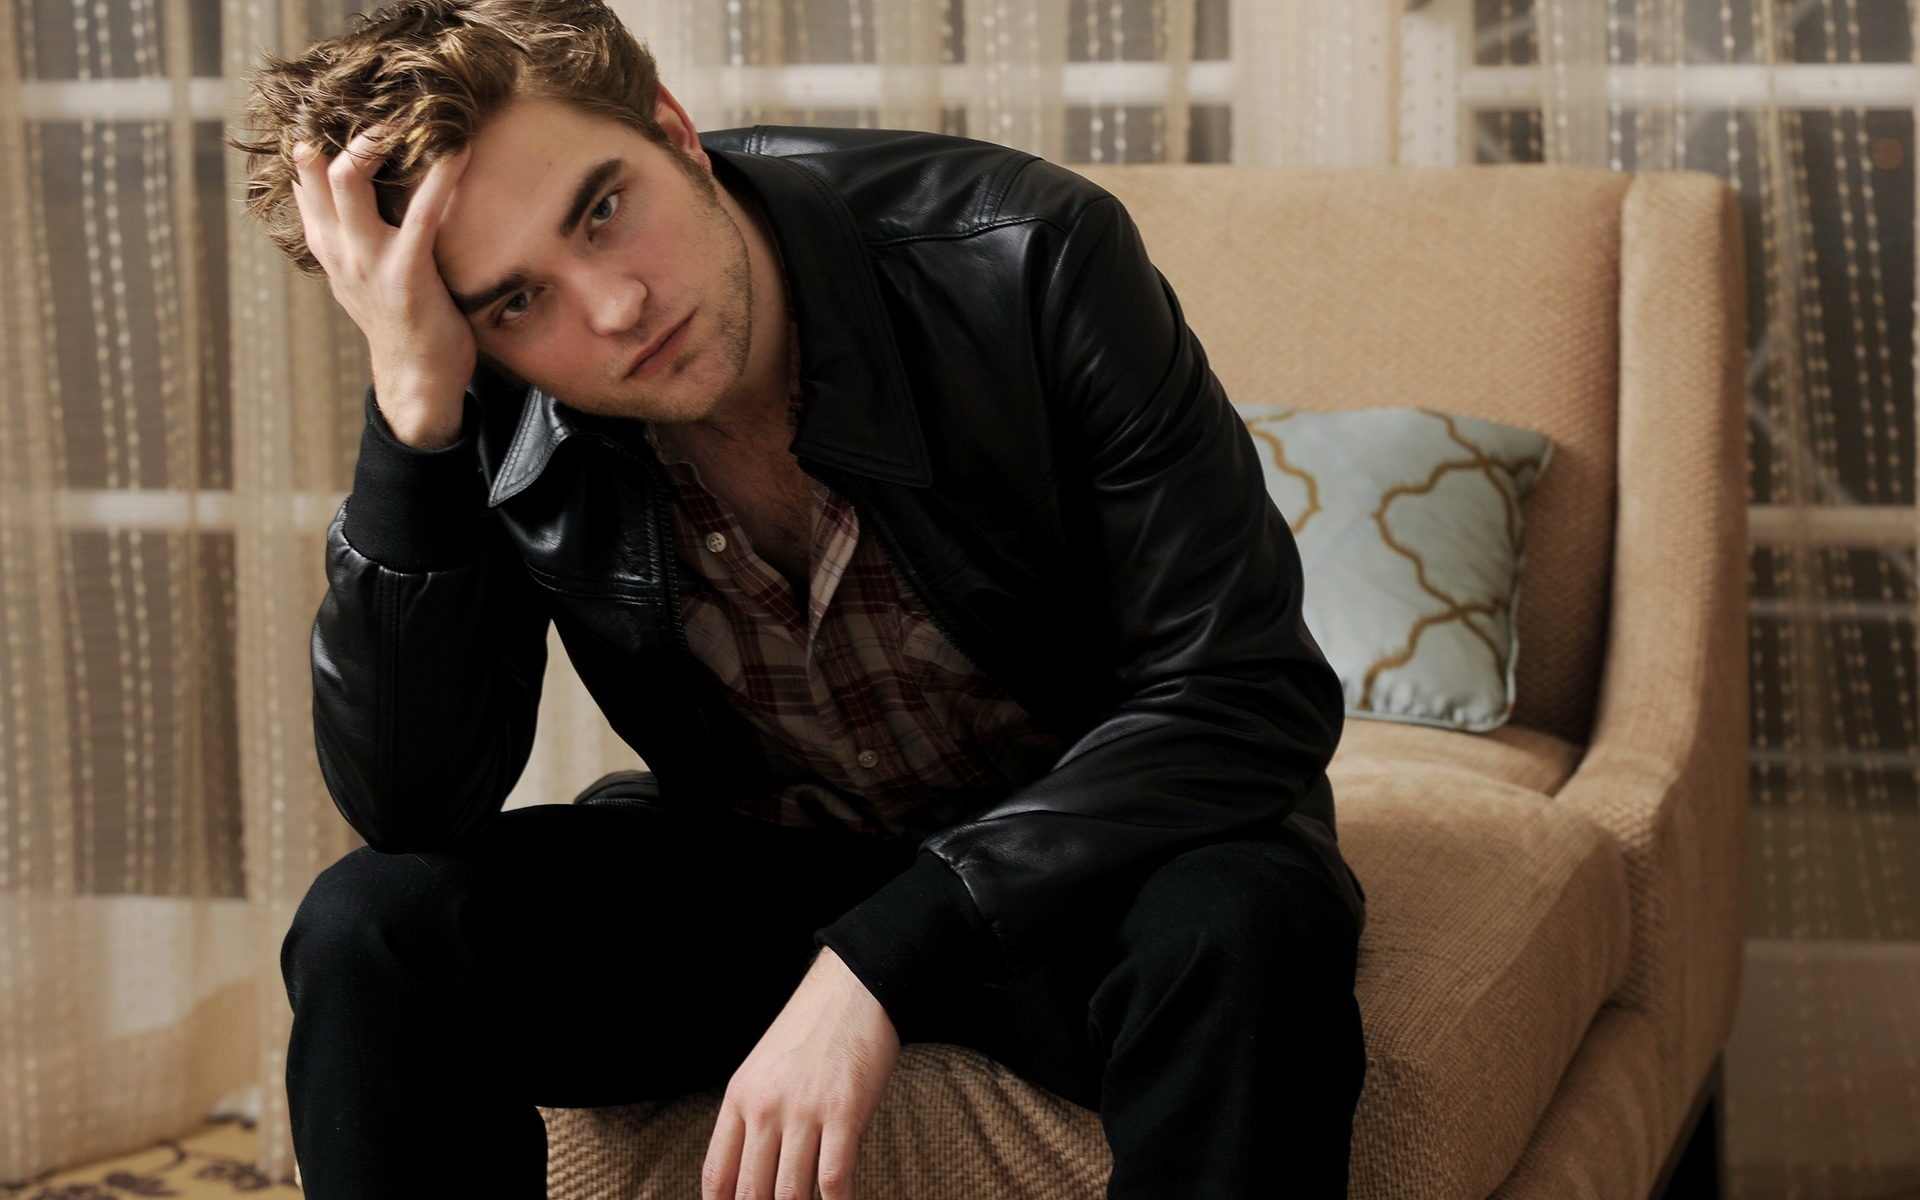 Robert Pattinson Future Movies